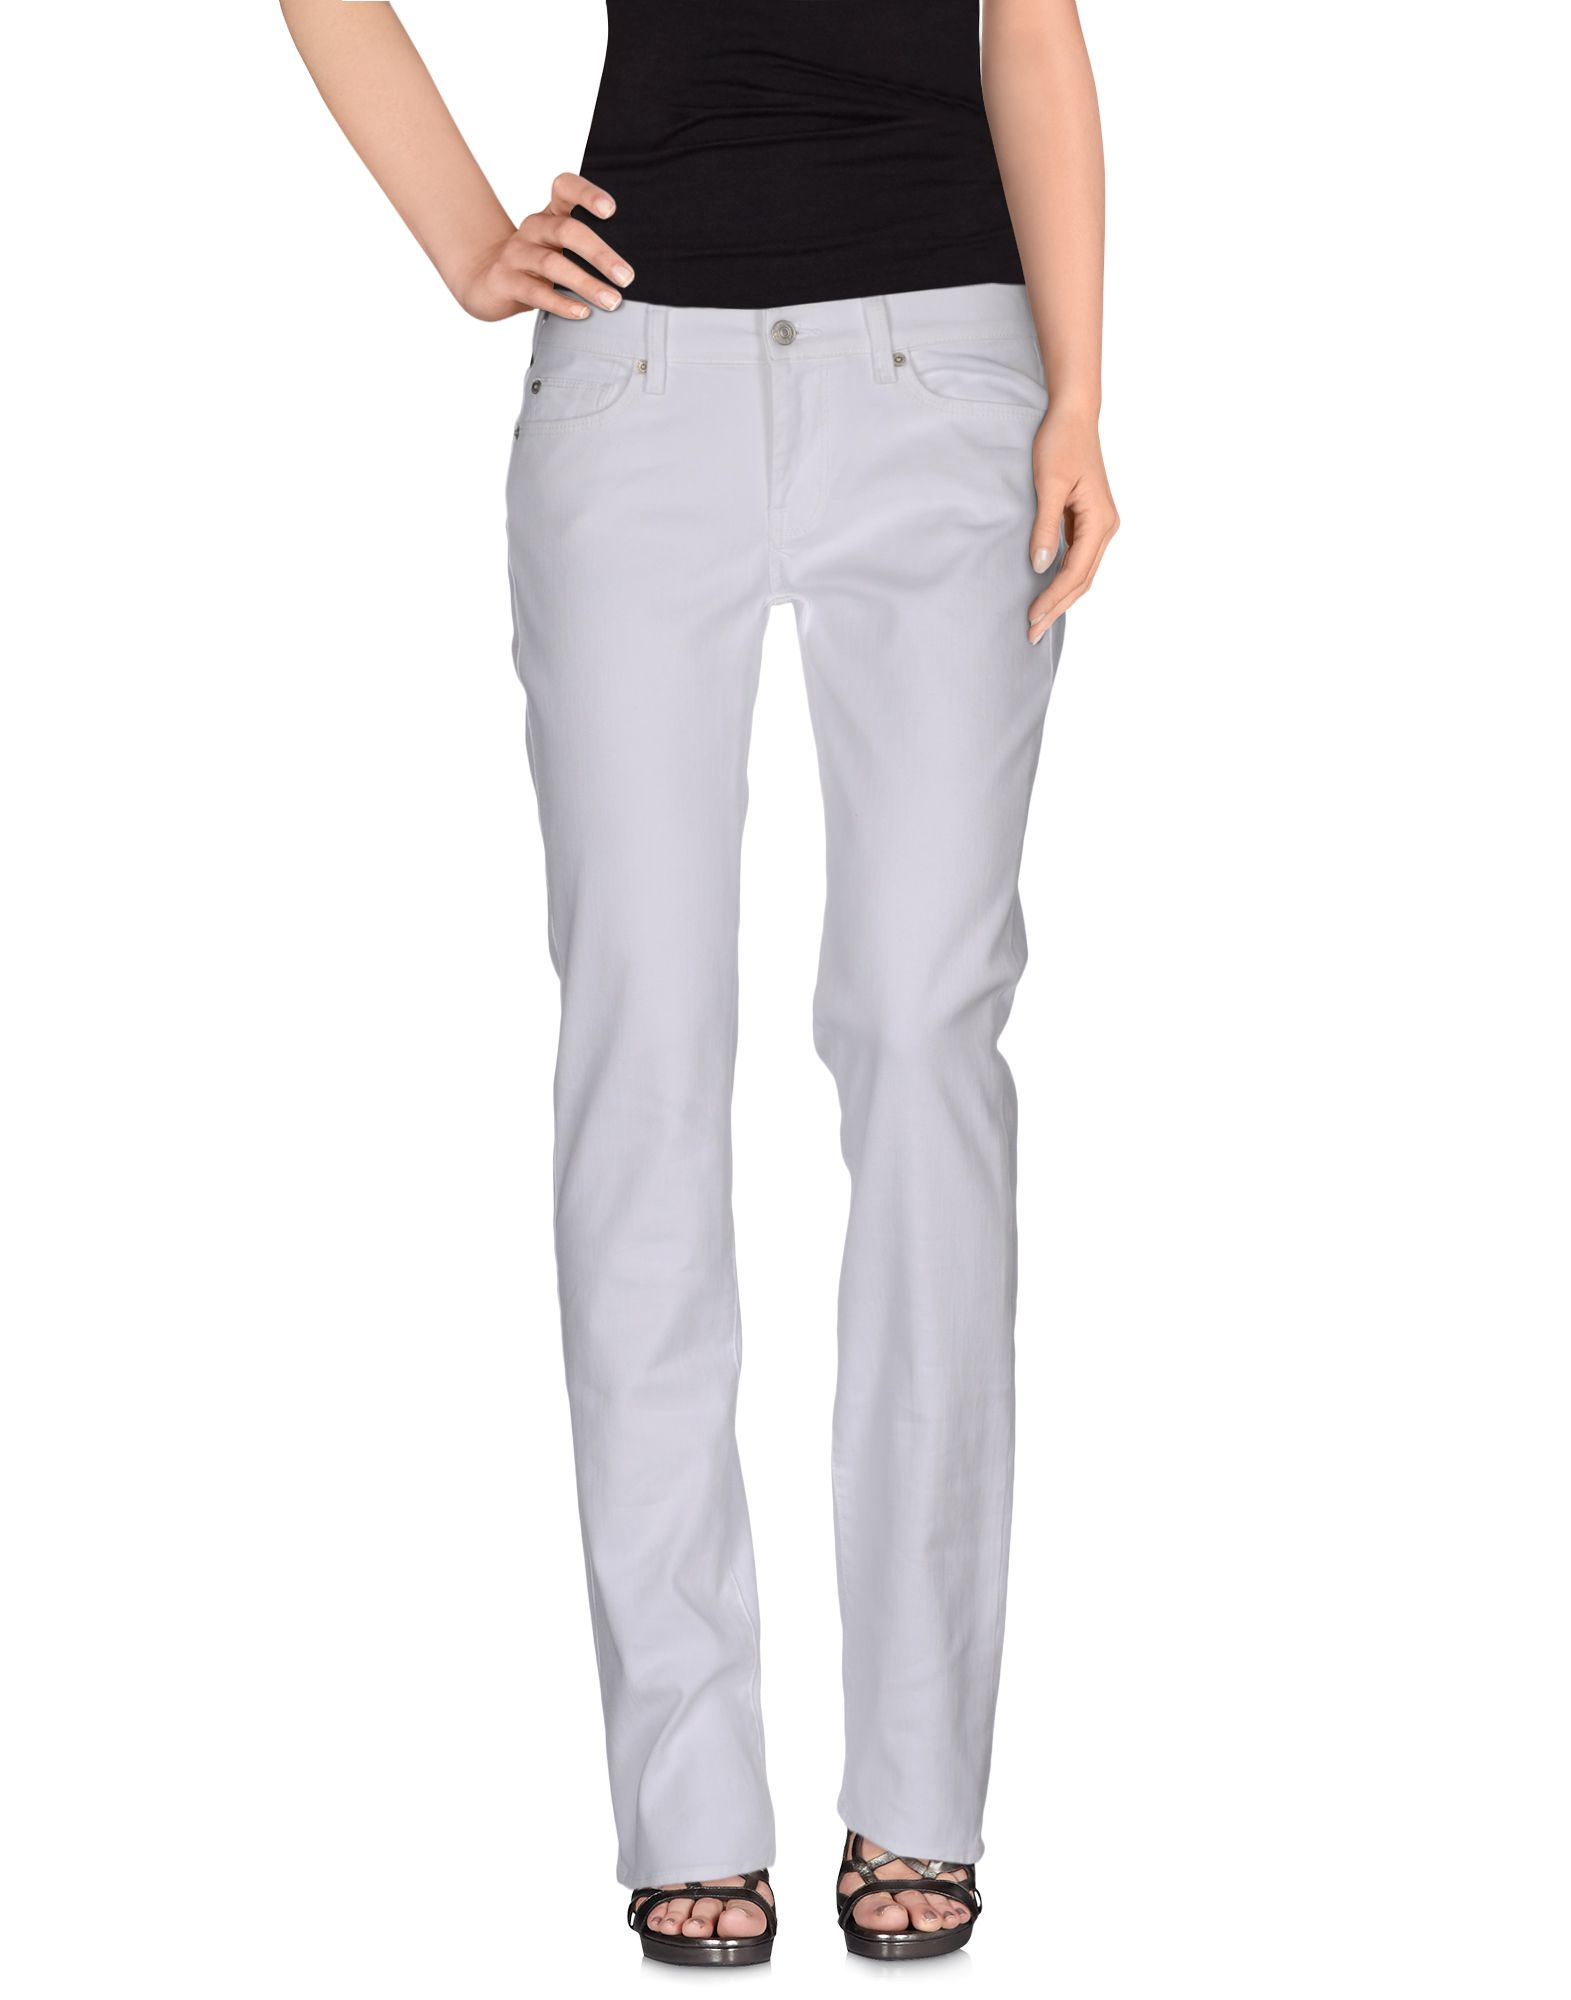 7 for all mankind denim trousers in white lyst. Black Bedroom Furniture Sets. Home Design Ideas